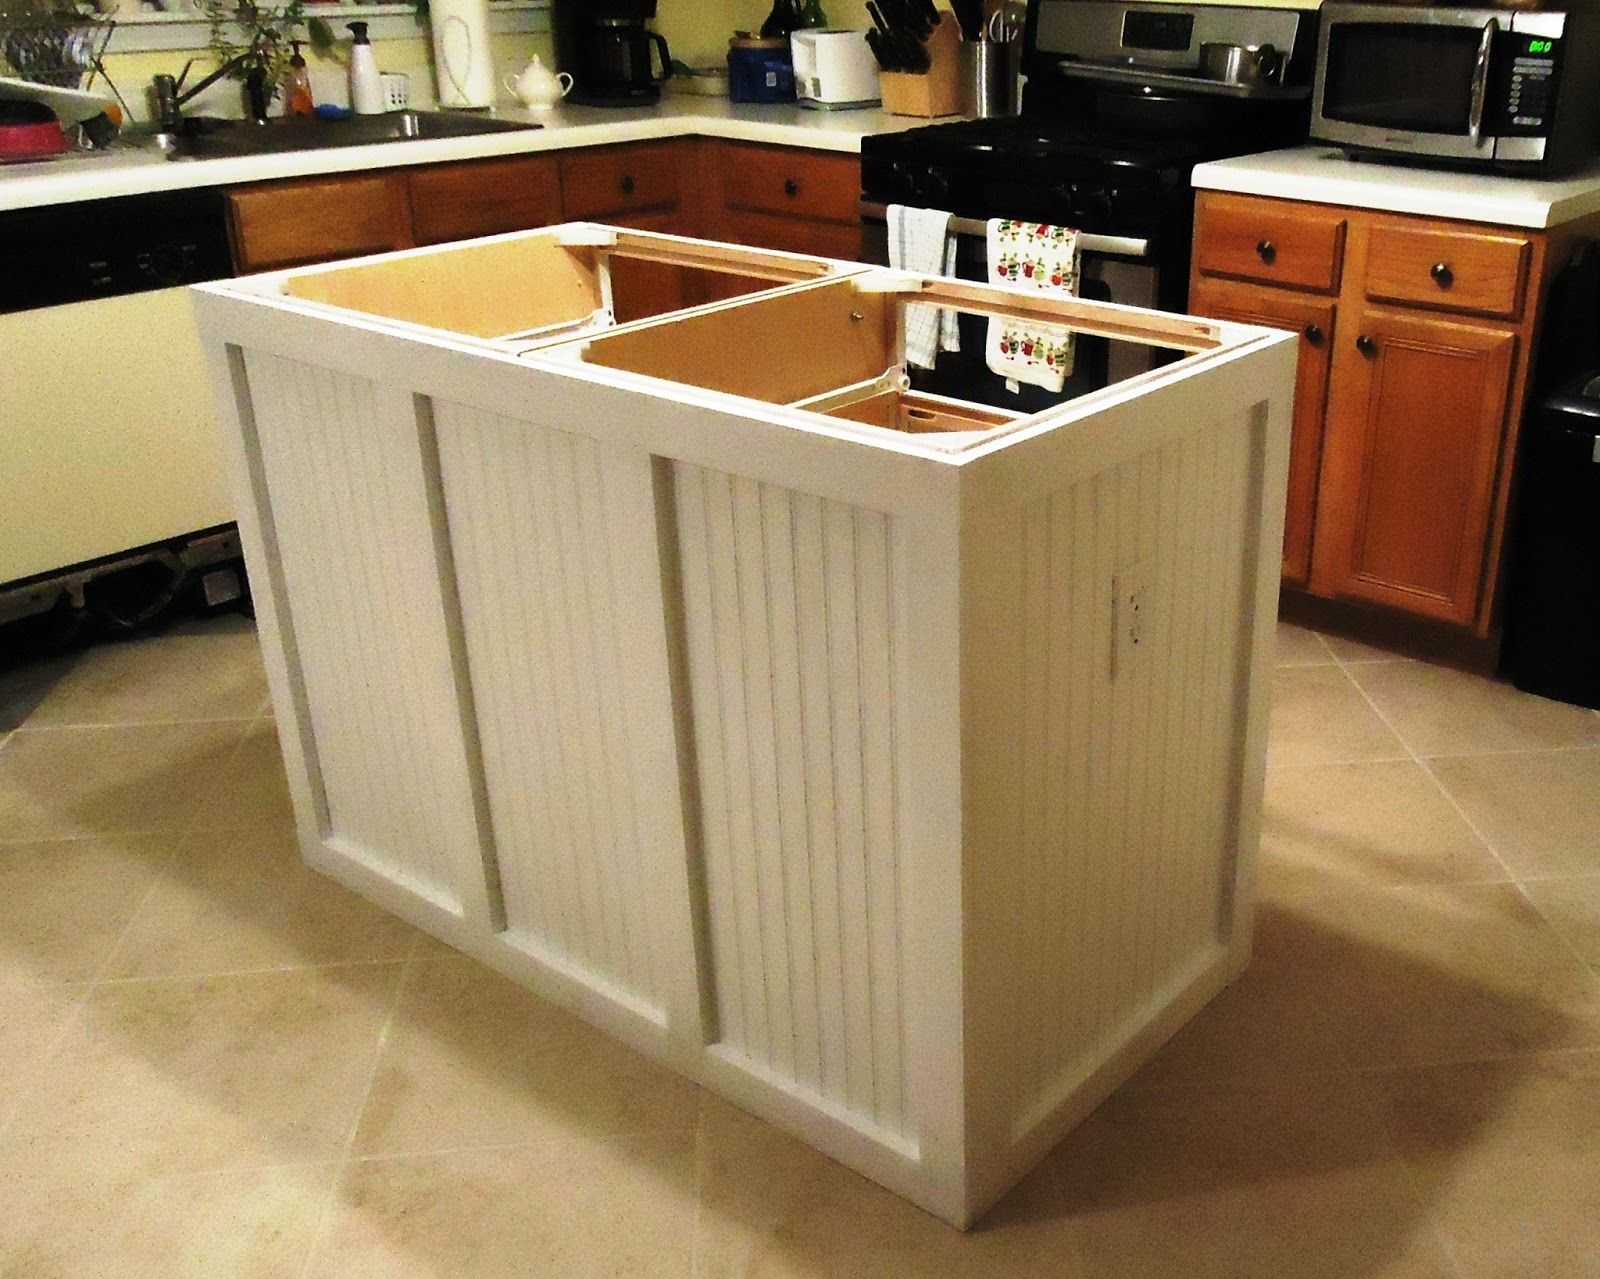 Kitchen Sink Base Cabinet Home Depot Diy Kitchen Island Plans Diy Kitchen Island Stylish Kitchen Island Diy Kitchen